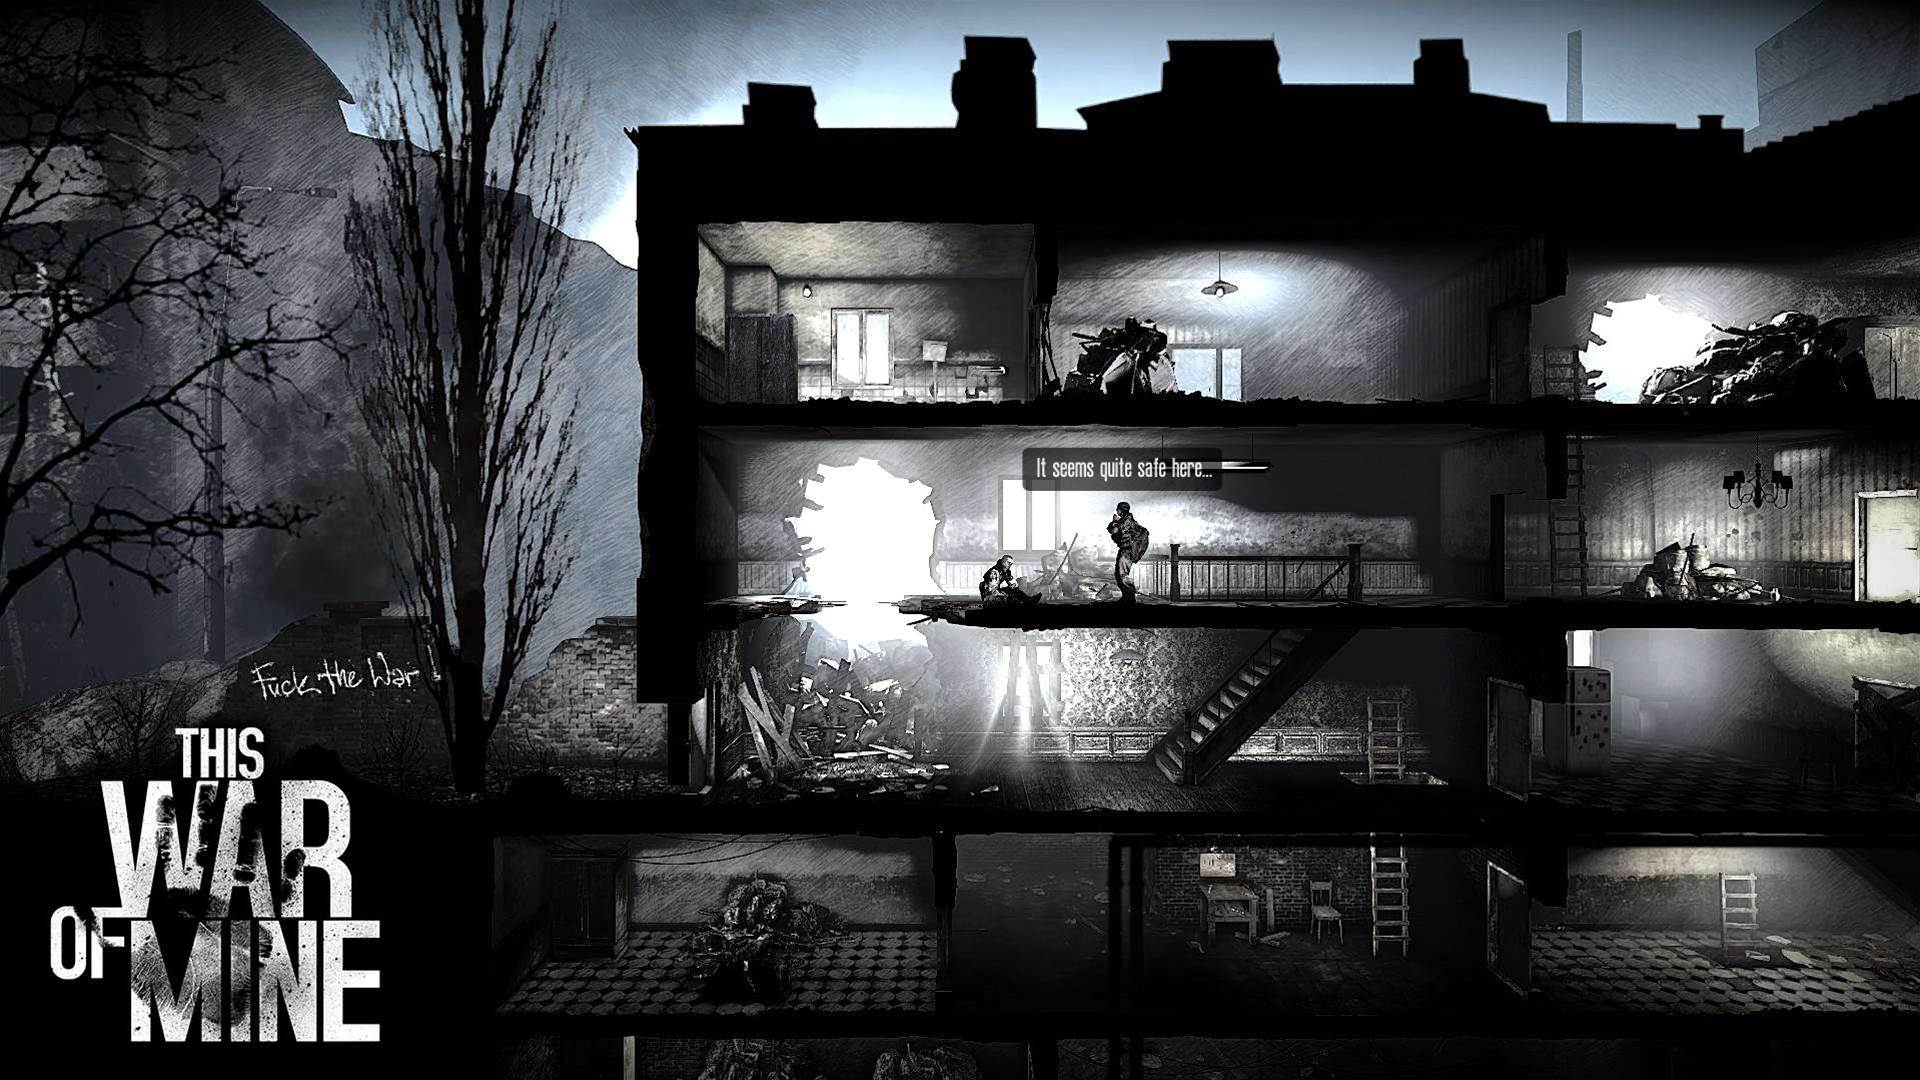 Discover the human cost of conflict in This War of Mine